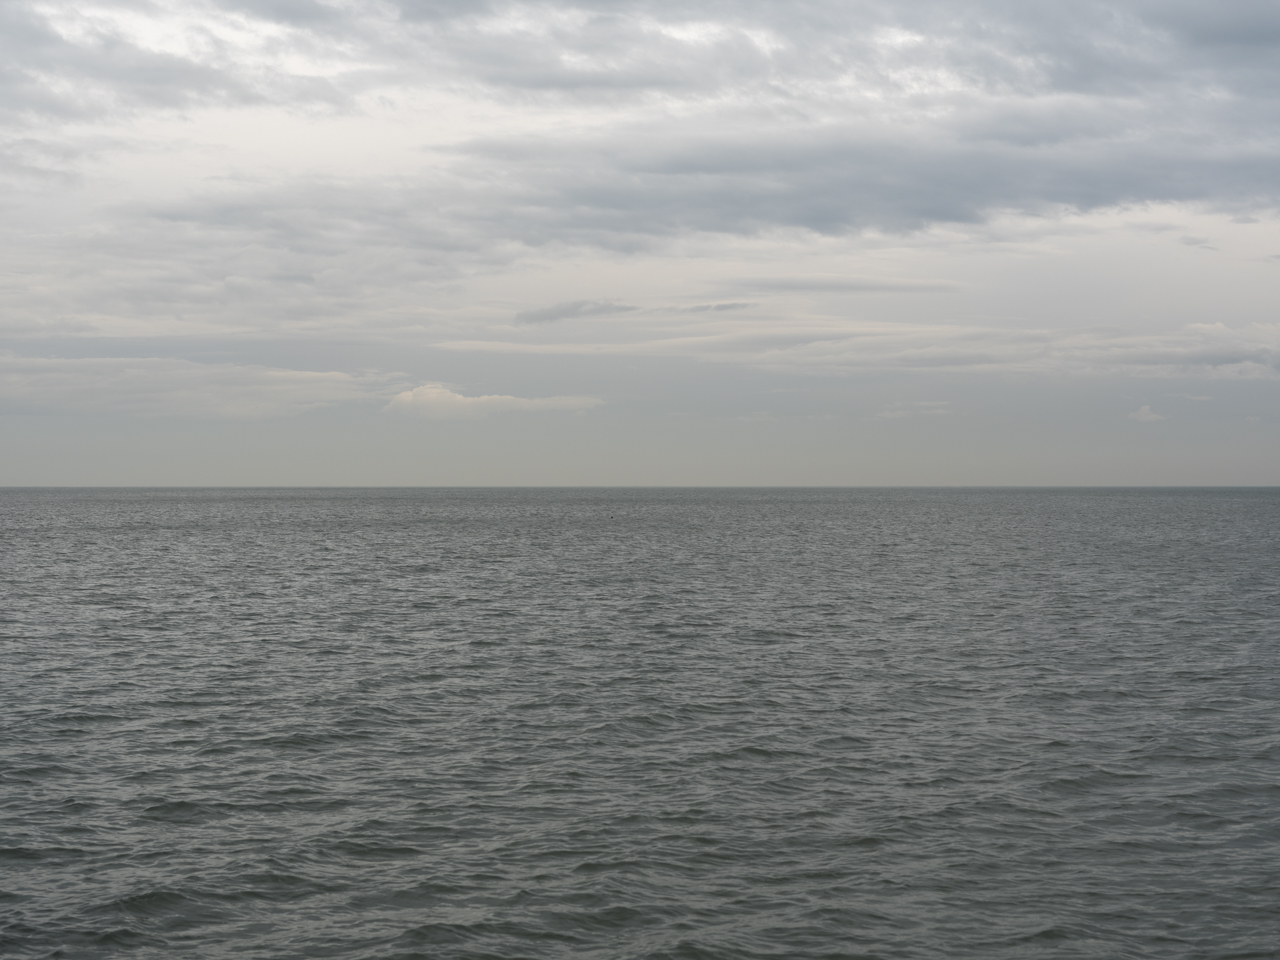 cloud cover is heavy in the sky with a slightly rippling surface of Lake Michigan